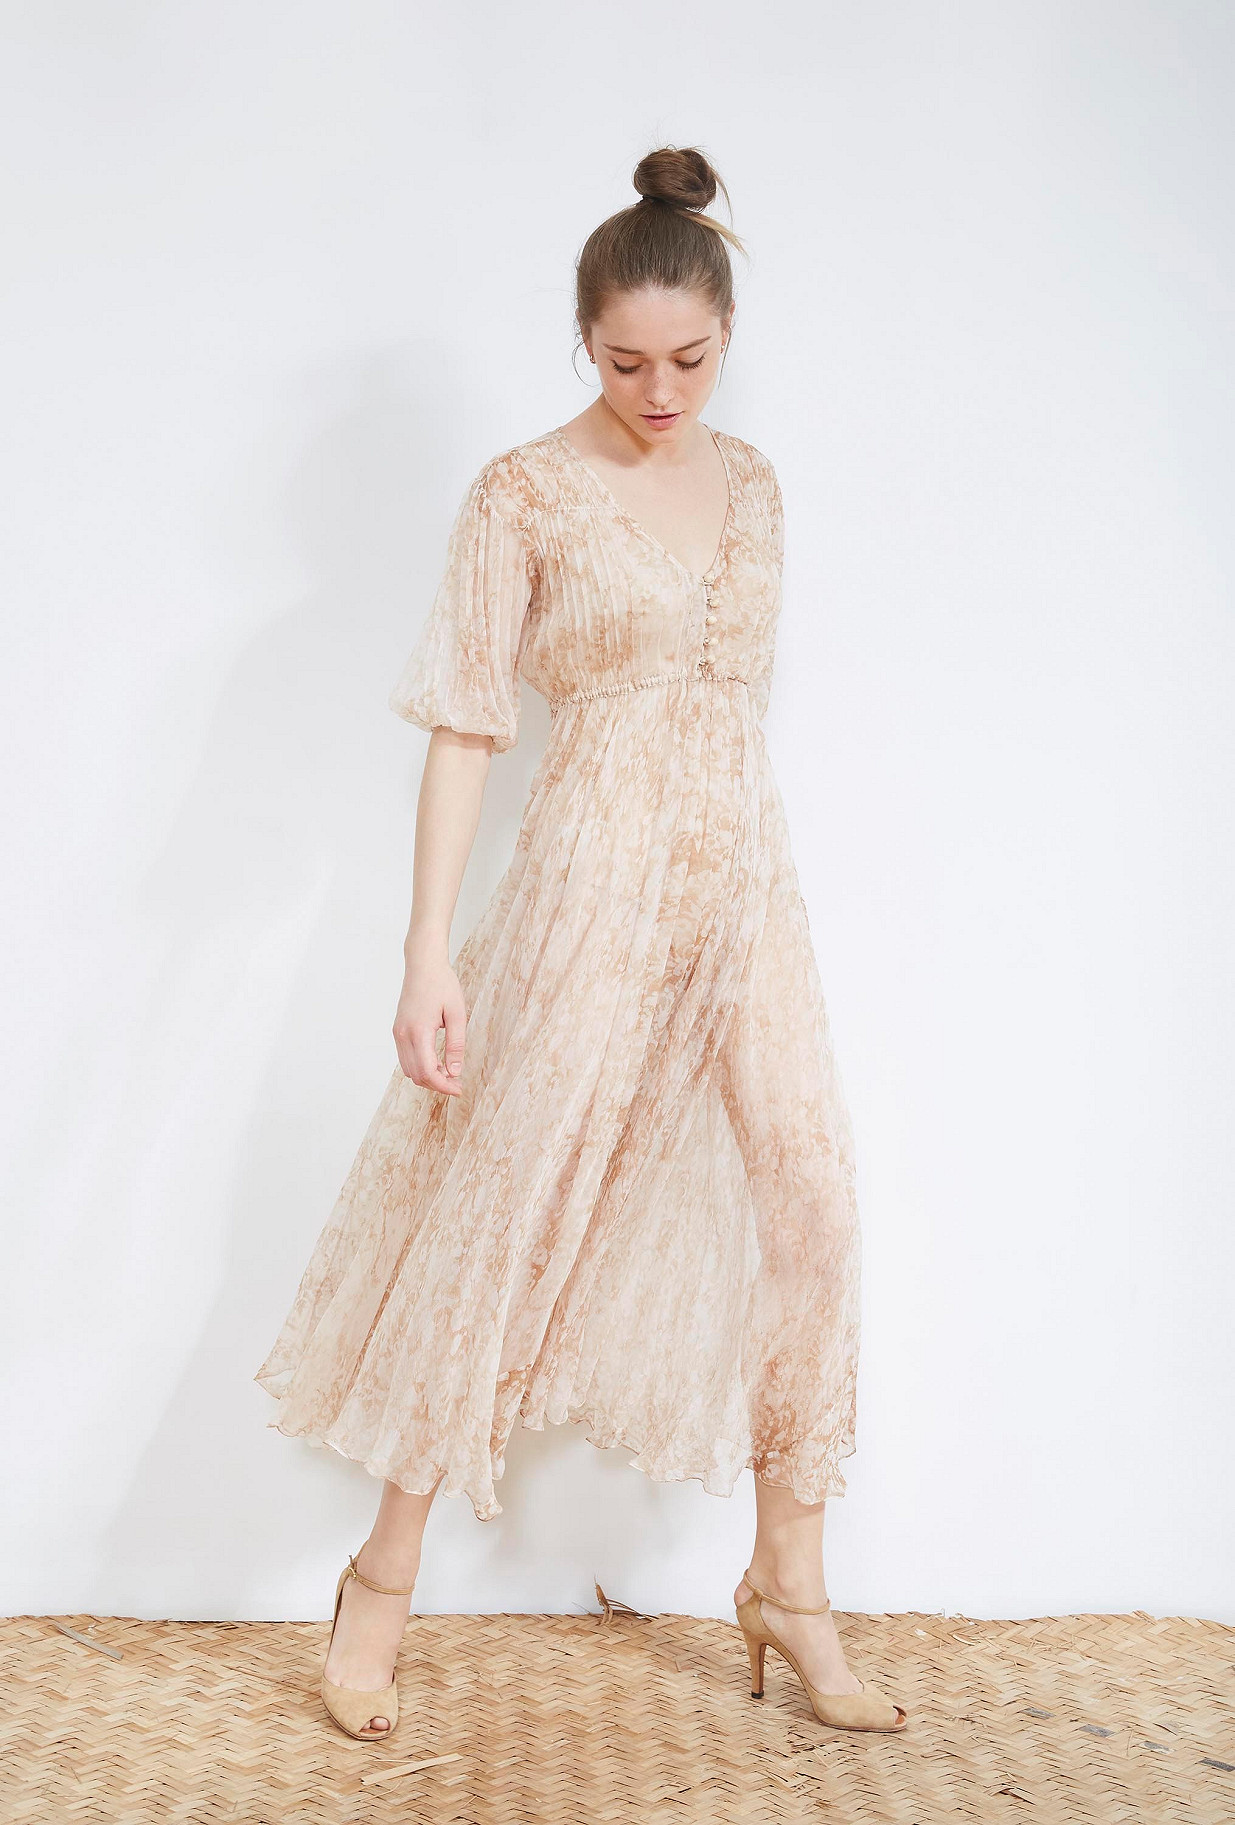 Nude  DRESS  Temple Mes demoiselles fashion clothes designer Paris